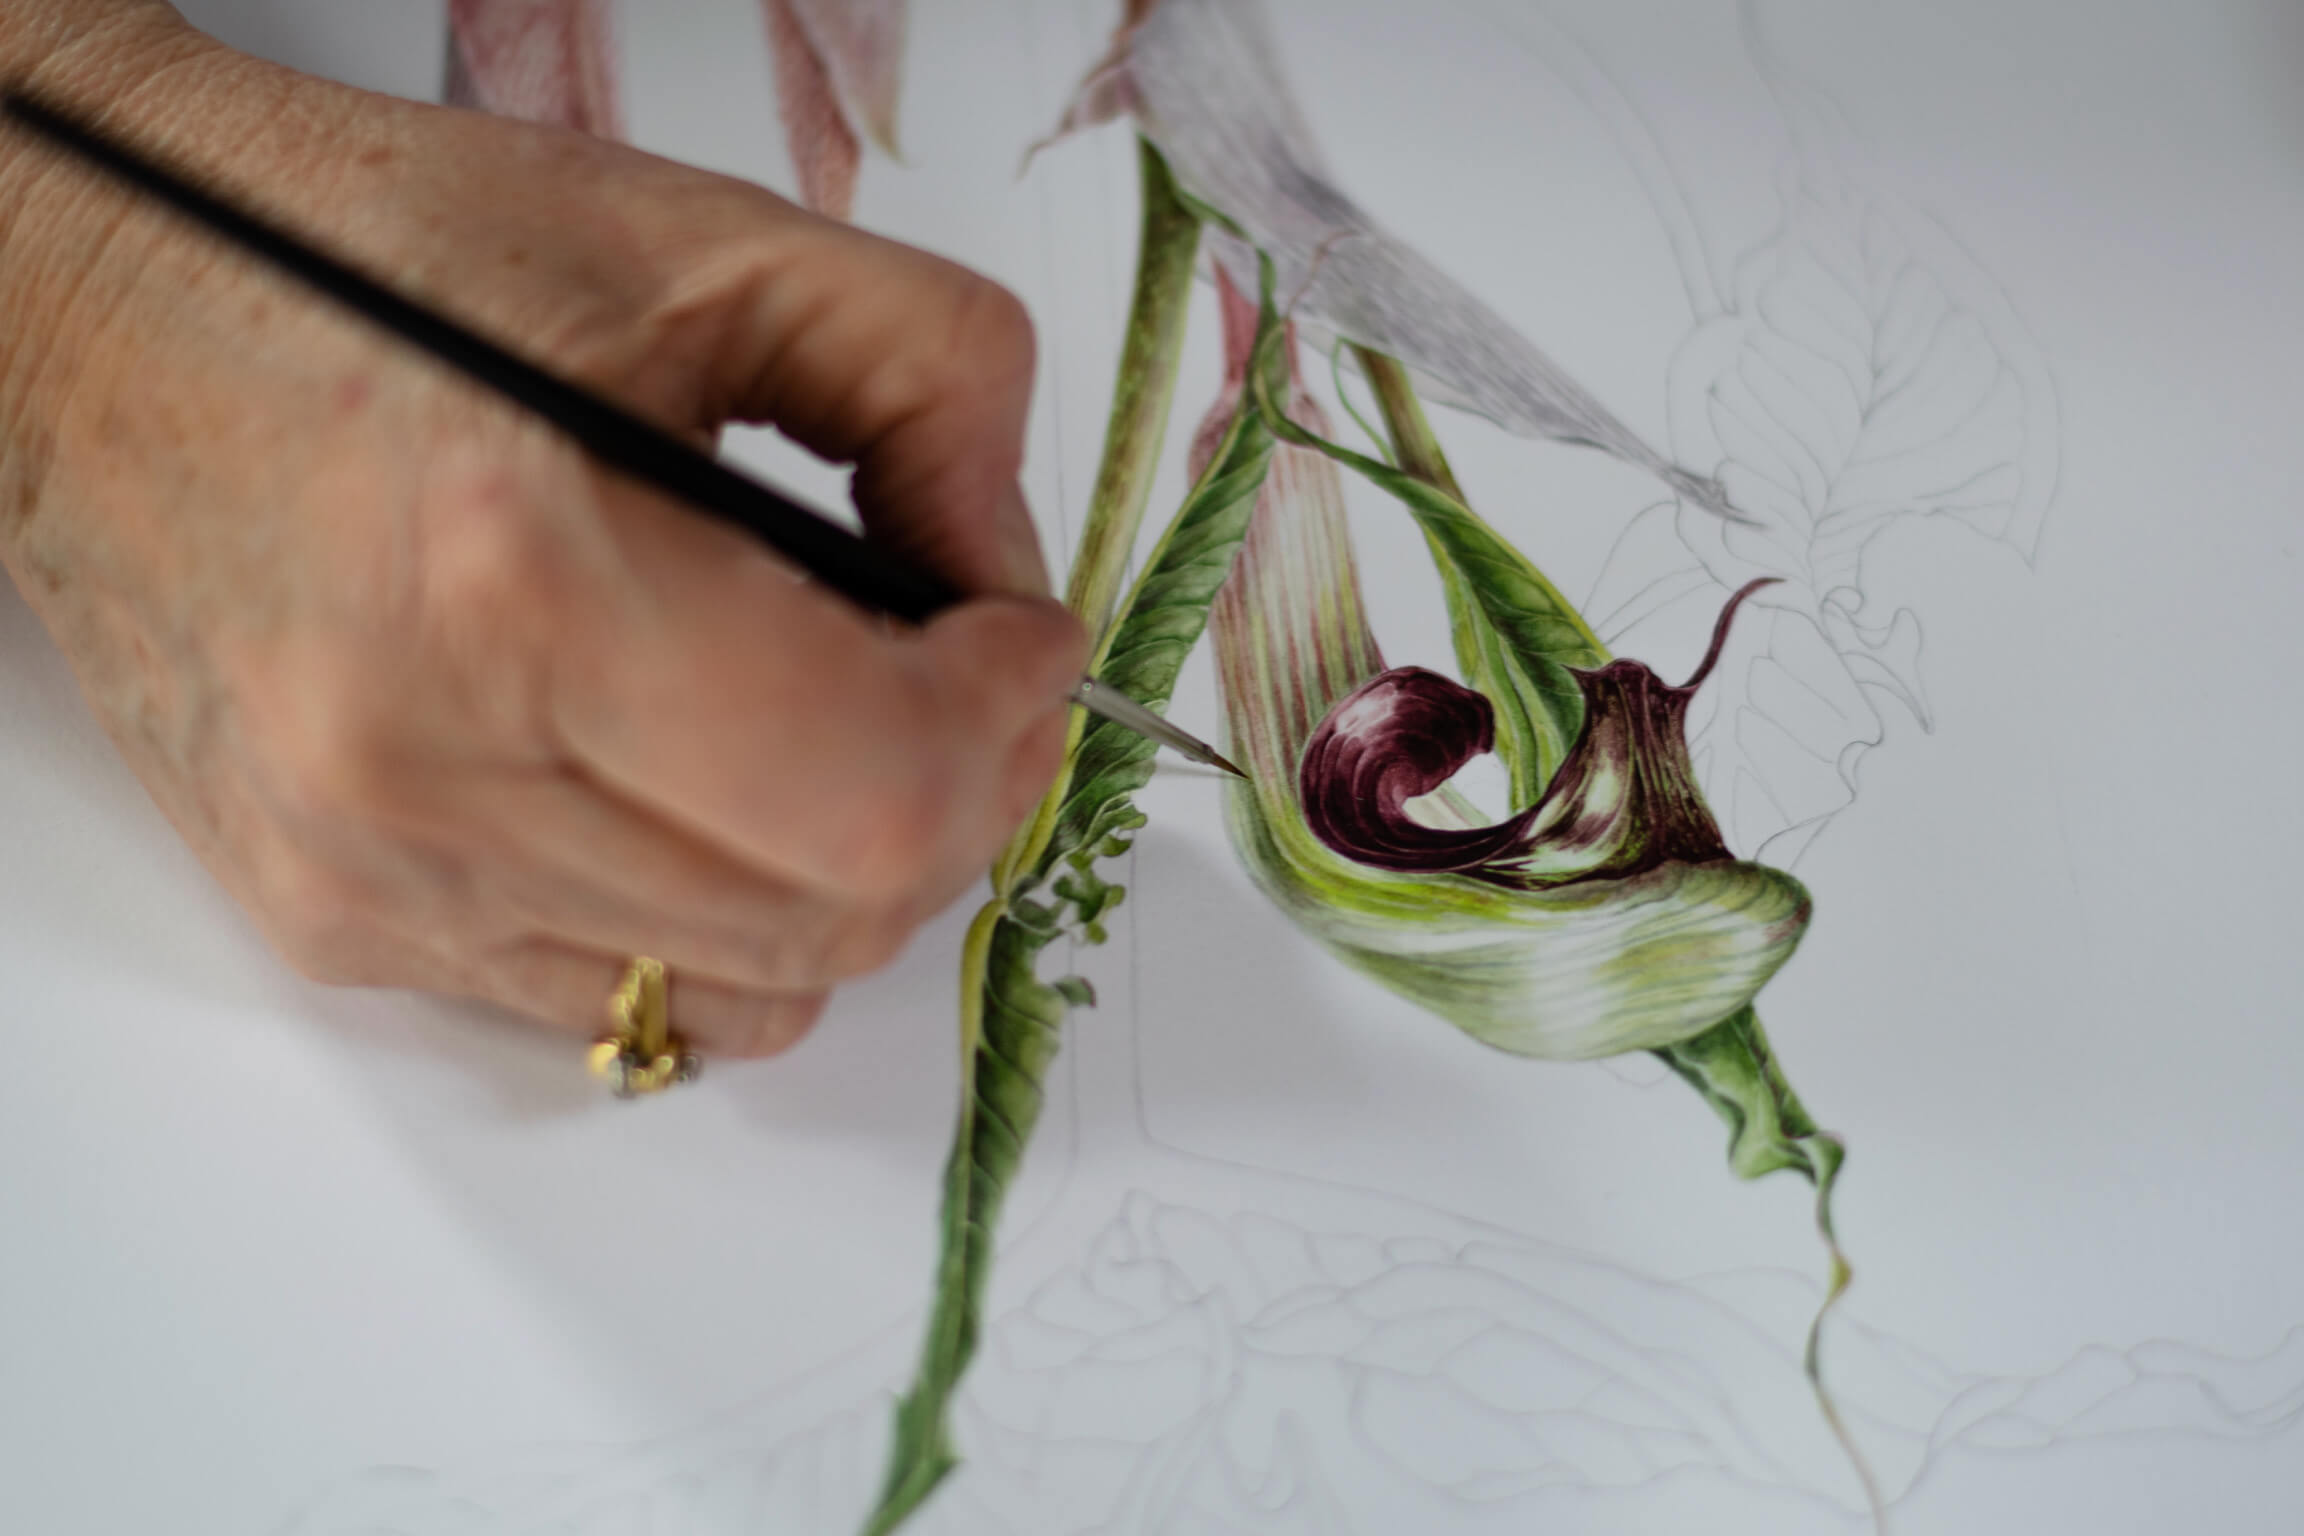 Woman's hand holding a paint brush and painting an orchid.